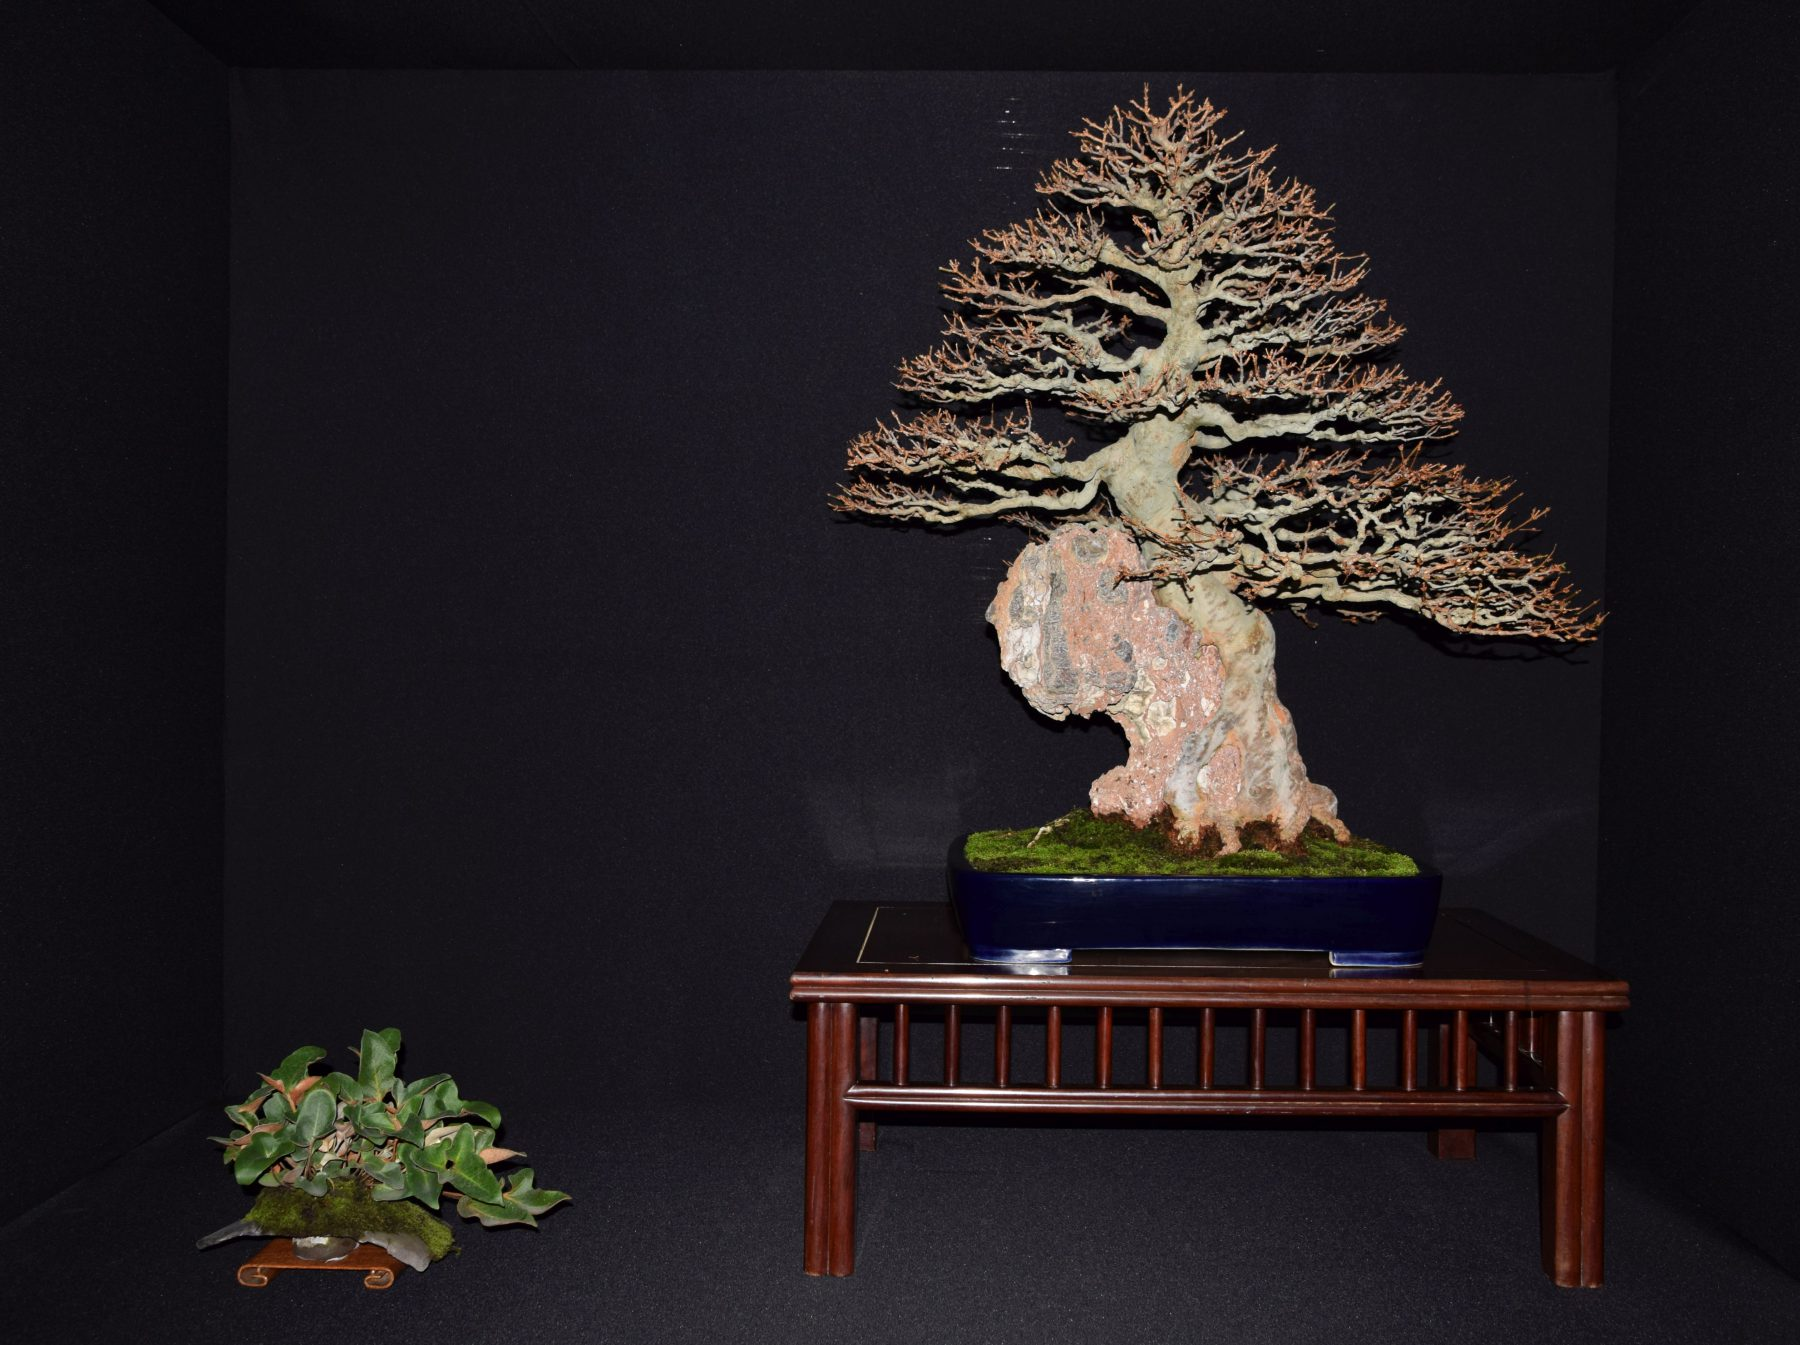 bonsai-museum-luis-vallejo-014